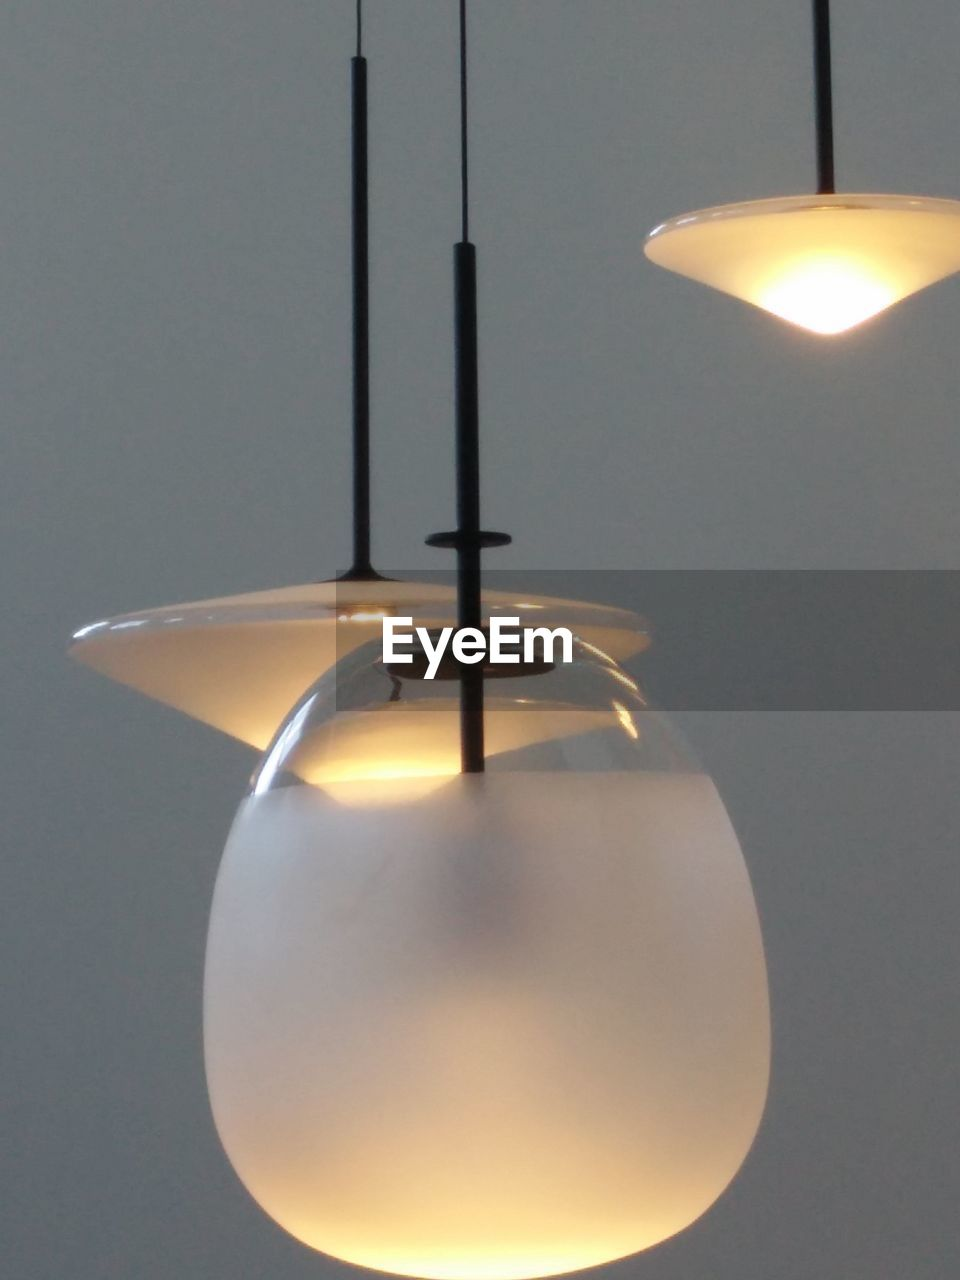 illuminated, lighting equipment, electricity, indoors, light, pendant light, electric lamp, glowing, hanging, no people, close-up, light bulb, electric light, light - natural phenomenon, ceiling, decoration, technology, metal, shape, table, light fixture, electrical equipment